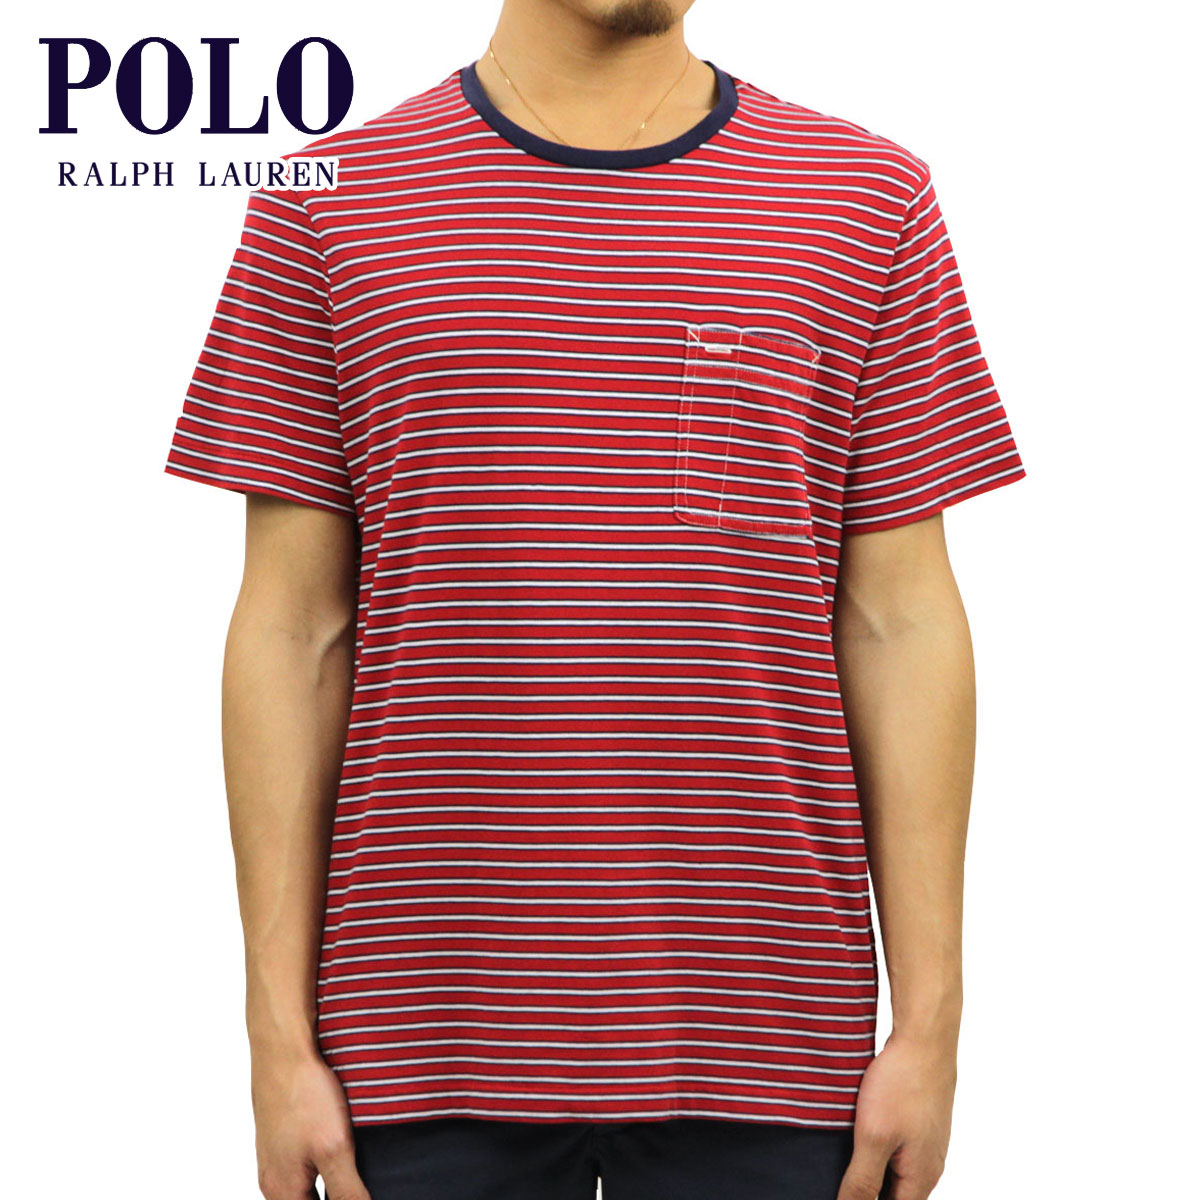 f30a0f8a Rakuten Ichiba shop MIXON: Polo Ralph Lauren POLO RALPH LAUREN regular  article men short sleeves T-shirt Striped Jersey Pocket T-Shirt D20S30 |  Rakuten ...